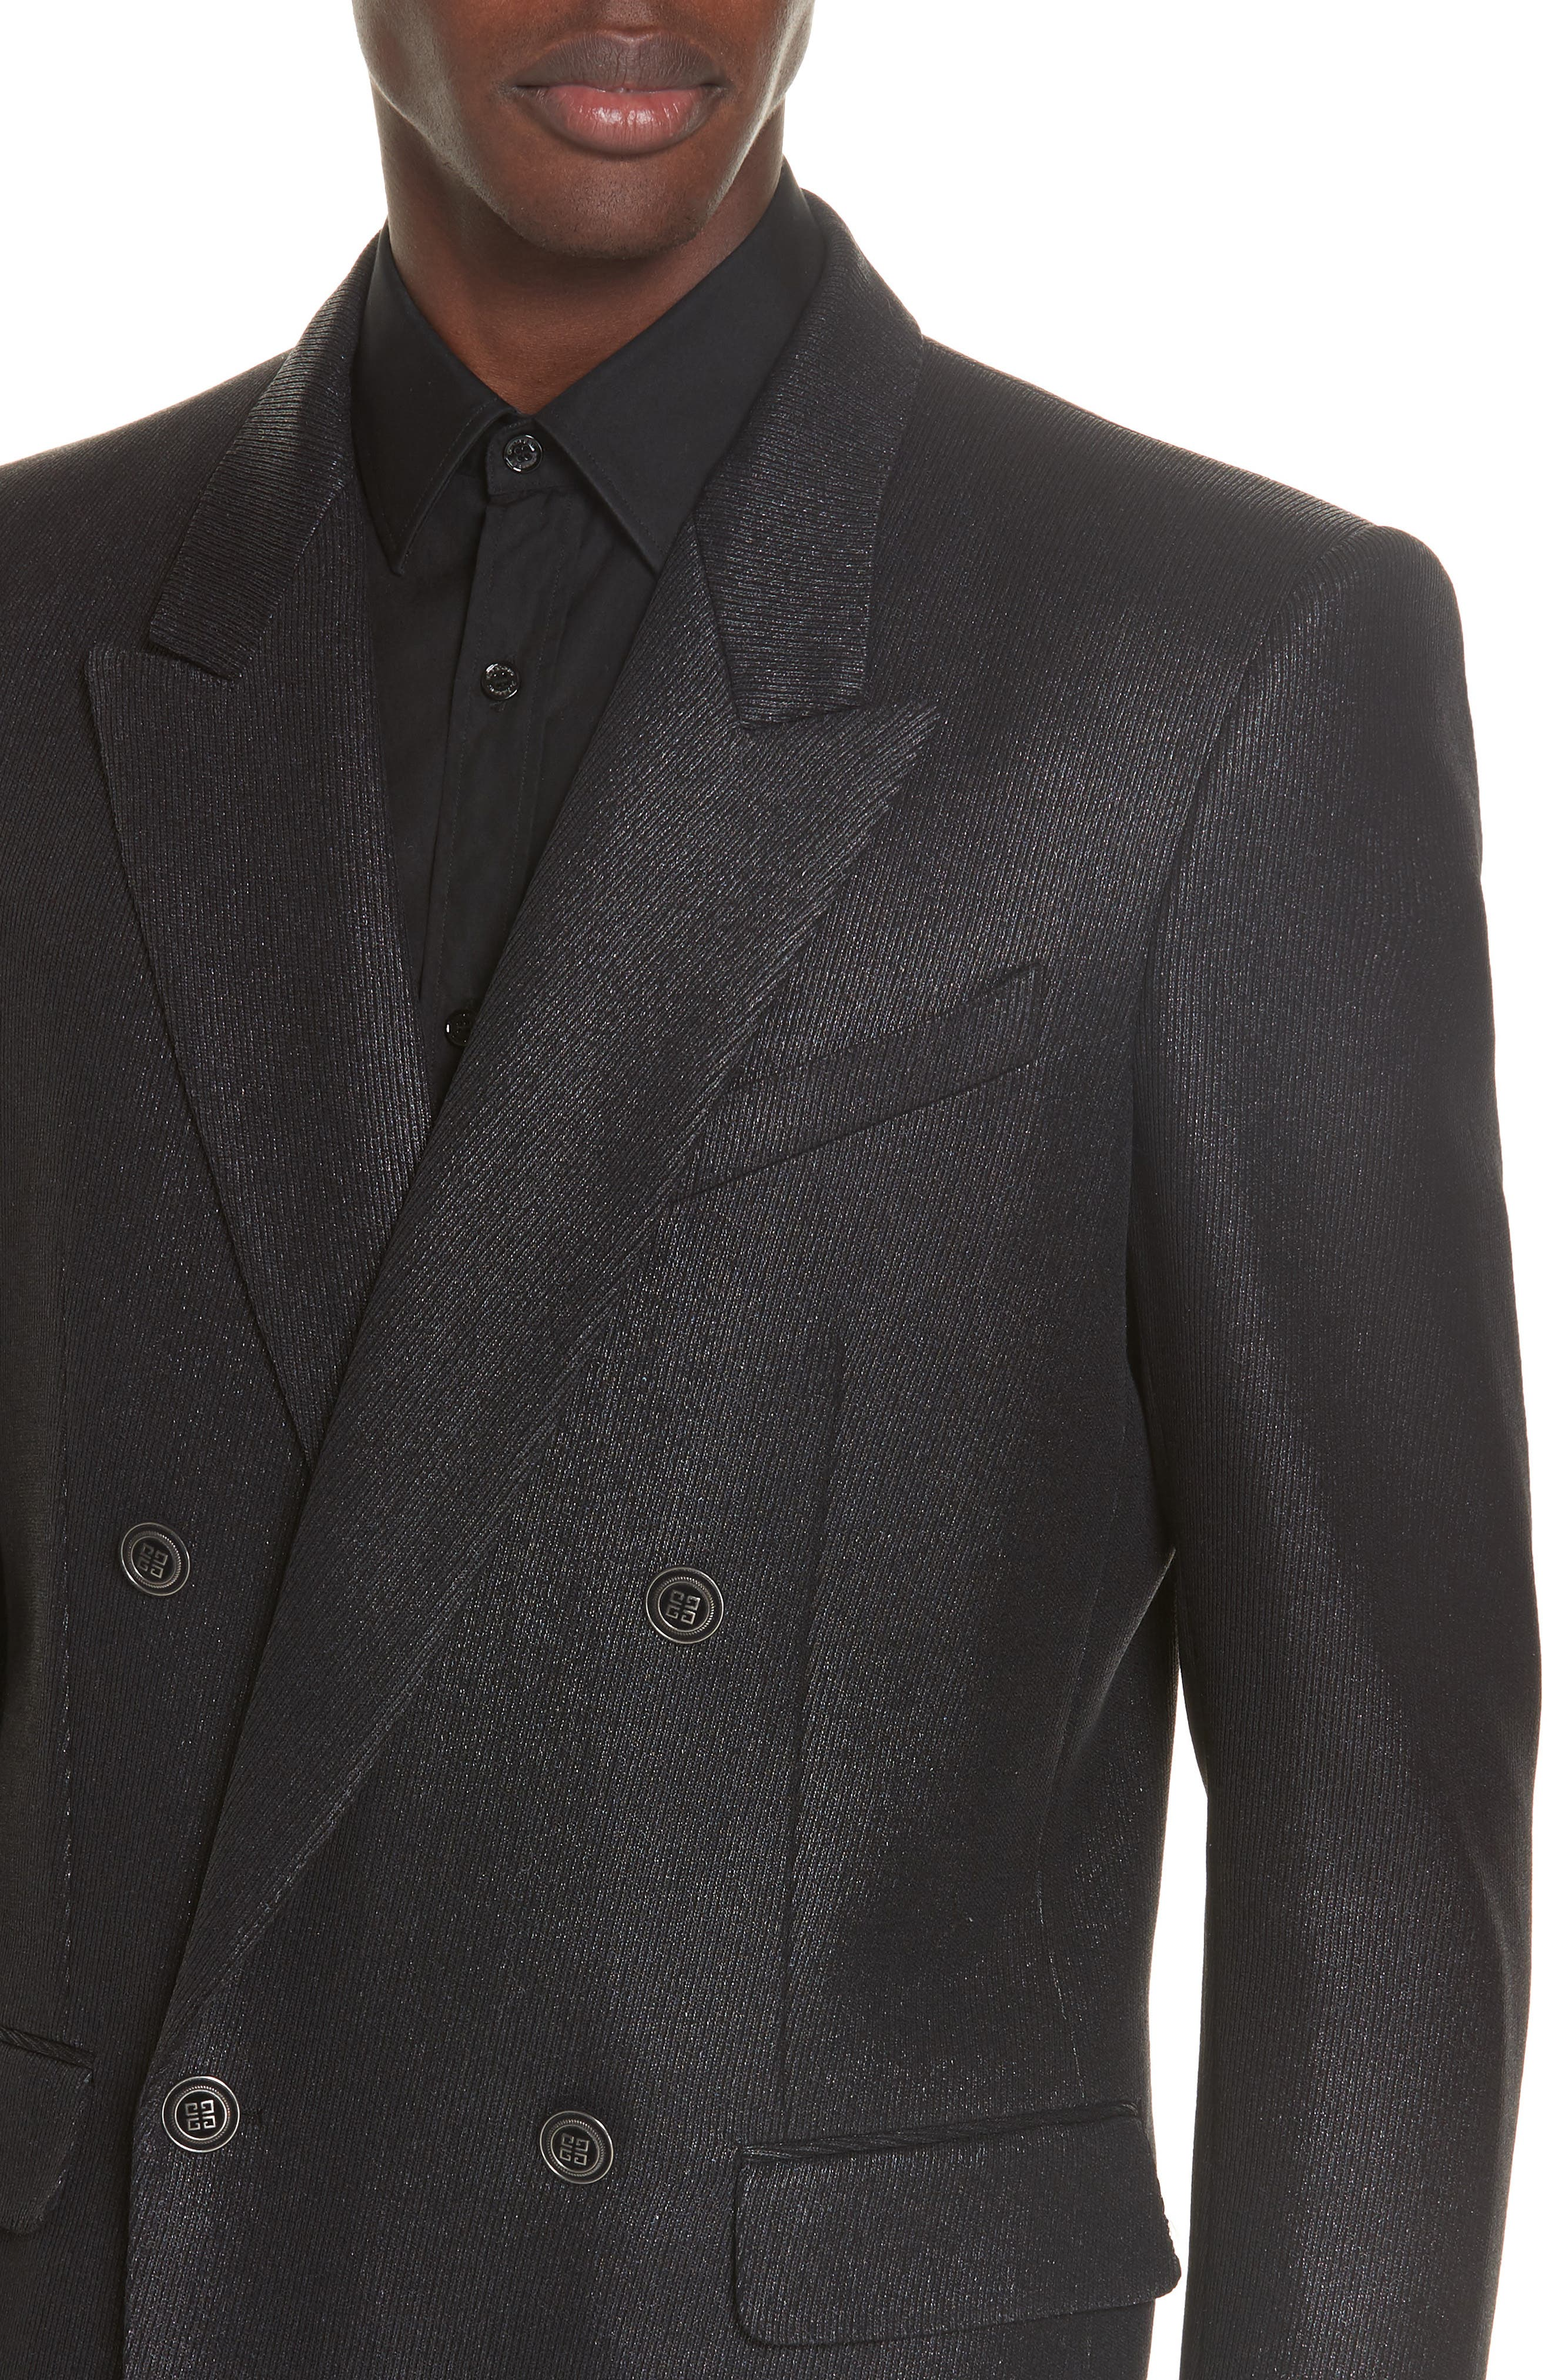 Double Breasted Wool Blazer,                             Alternate thumbnail 4, color,                             001